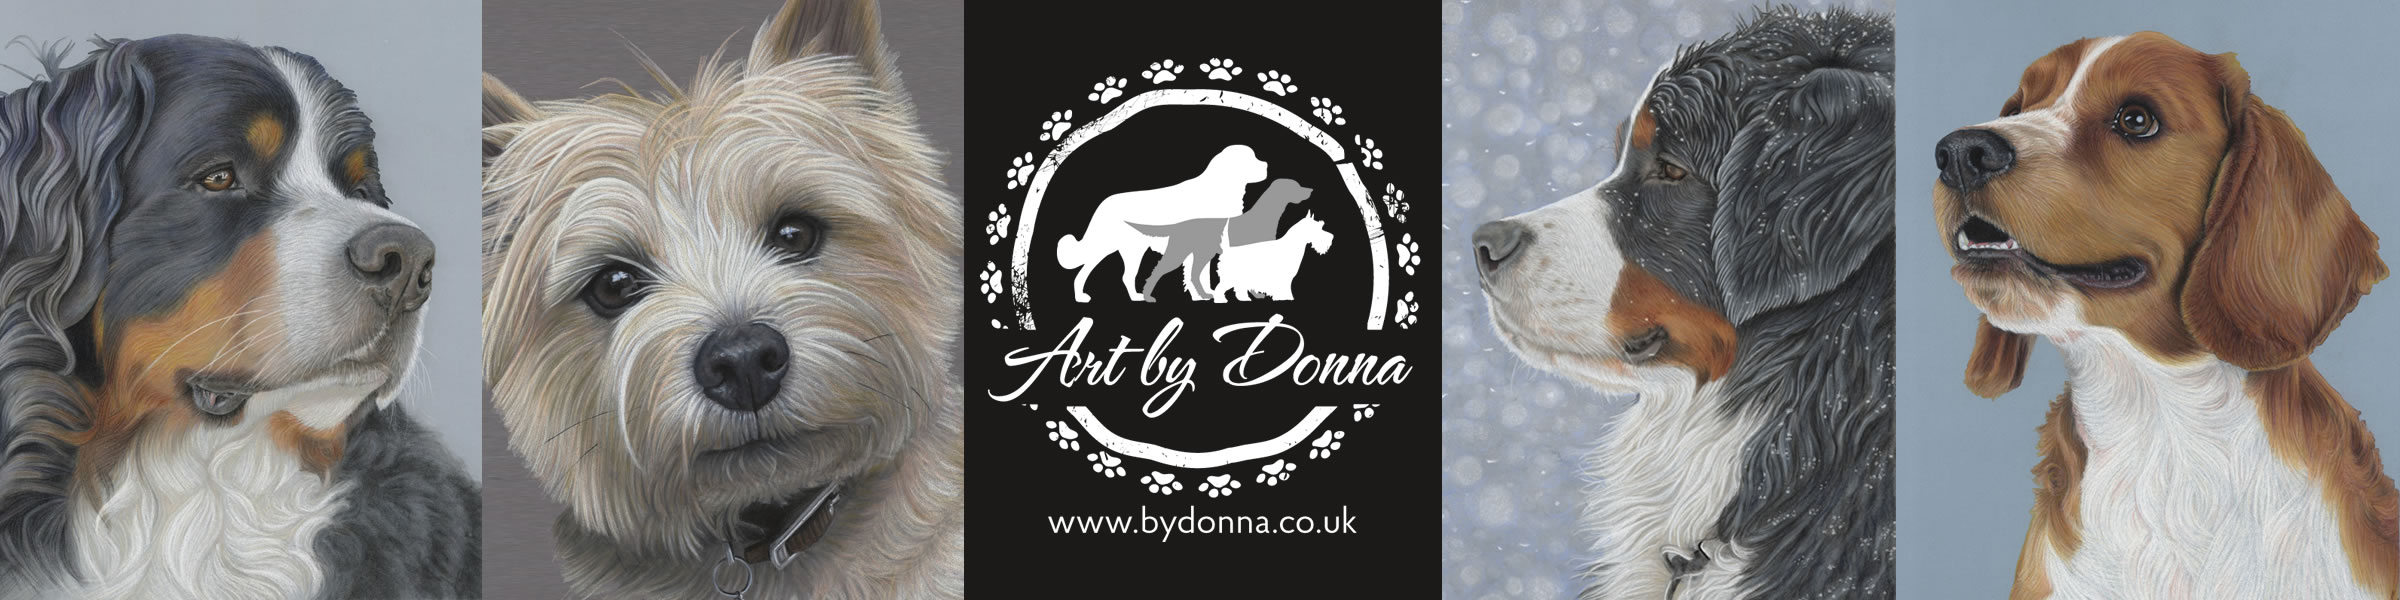 Pet Portrait Artist - Dog Portraits by Donna